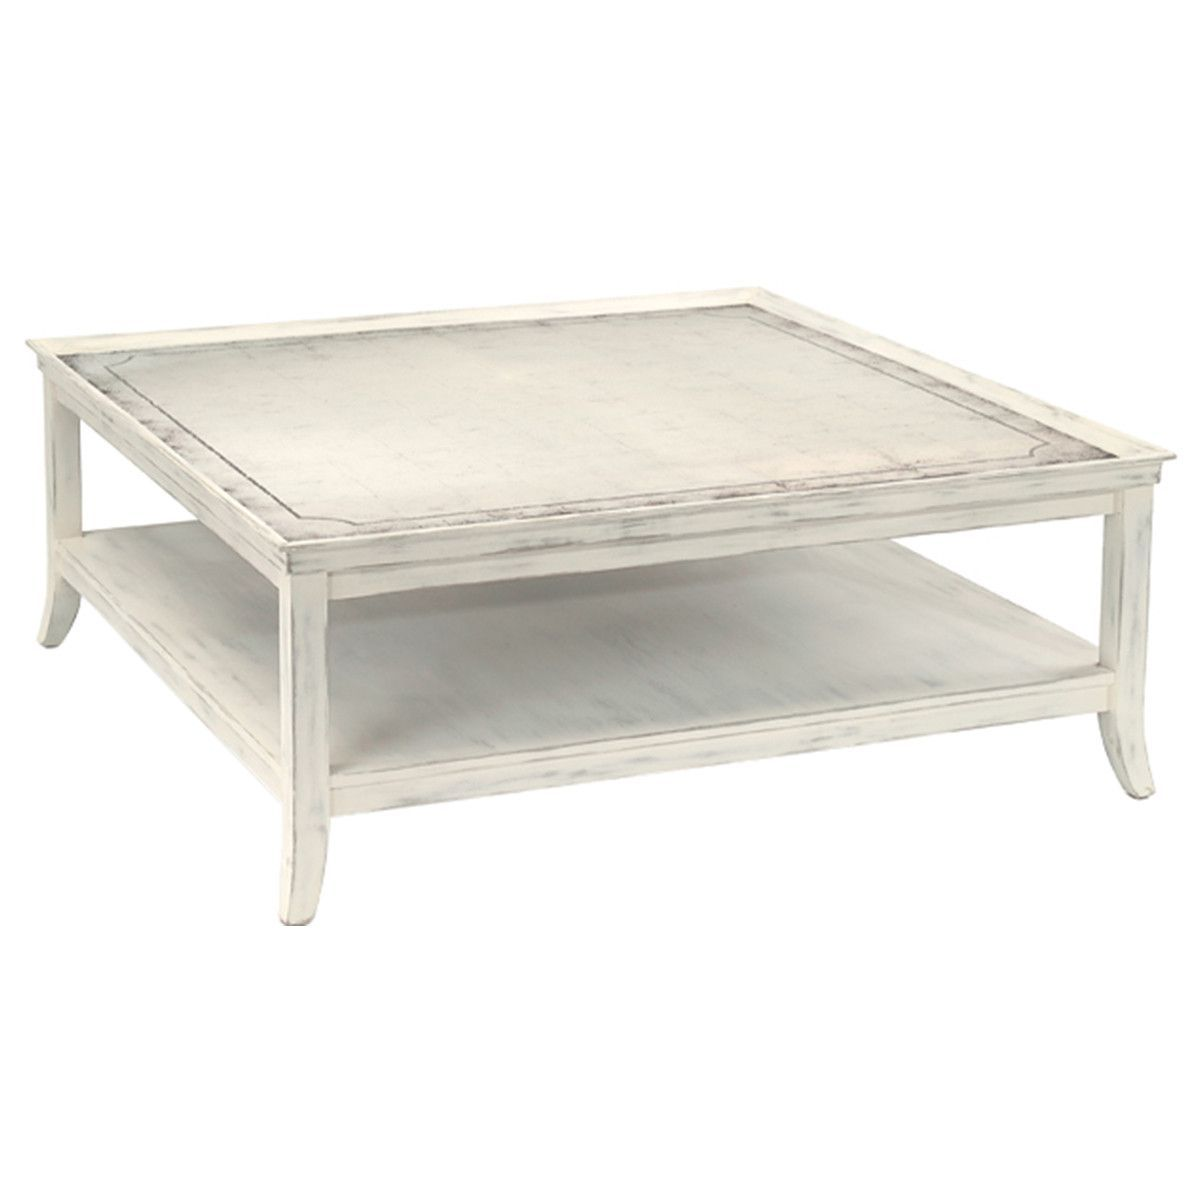 John Richard Mazarin Square Coffee Table 2289 48 X 48 X 19